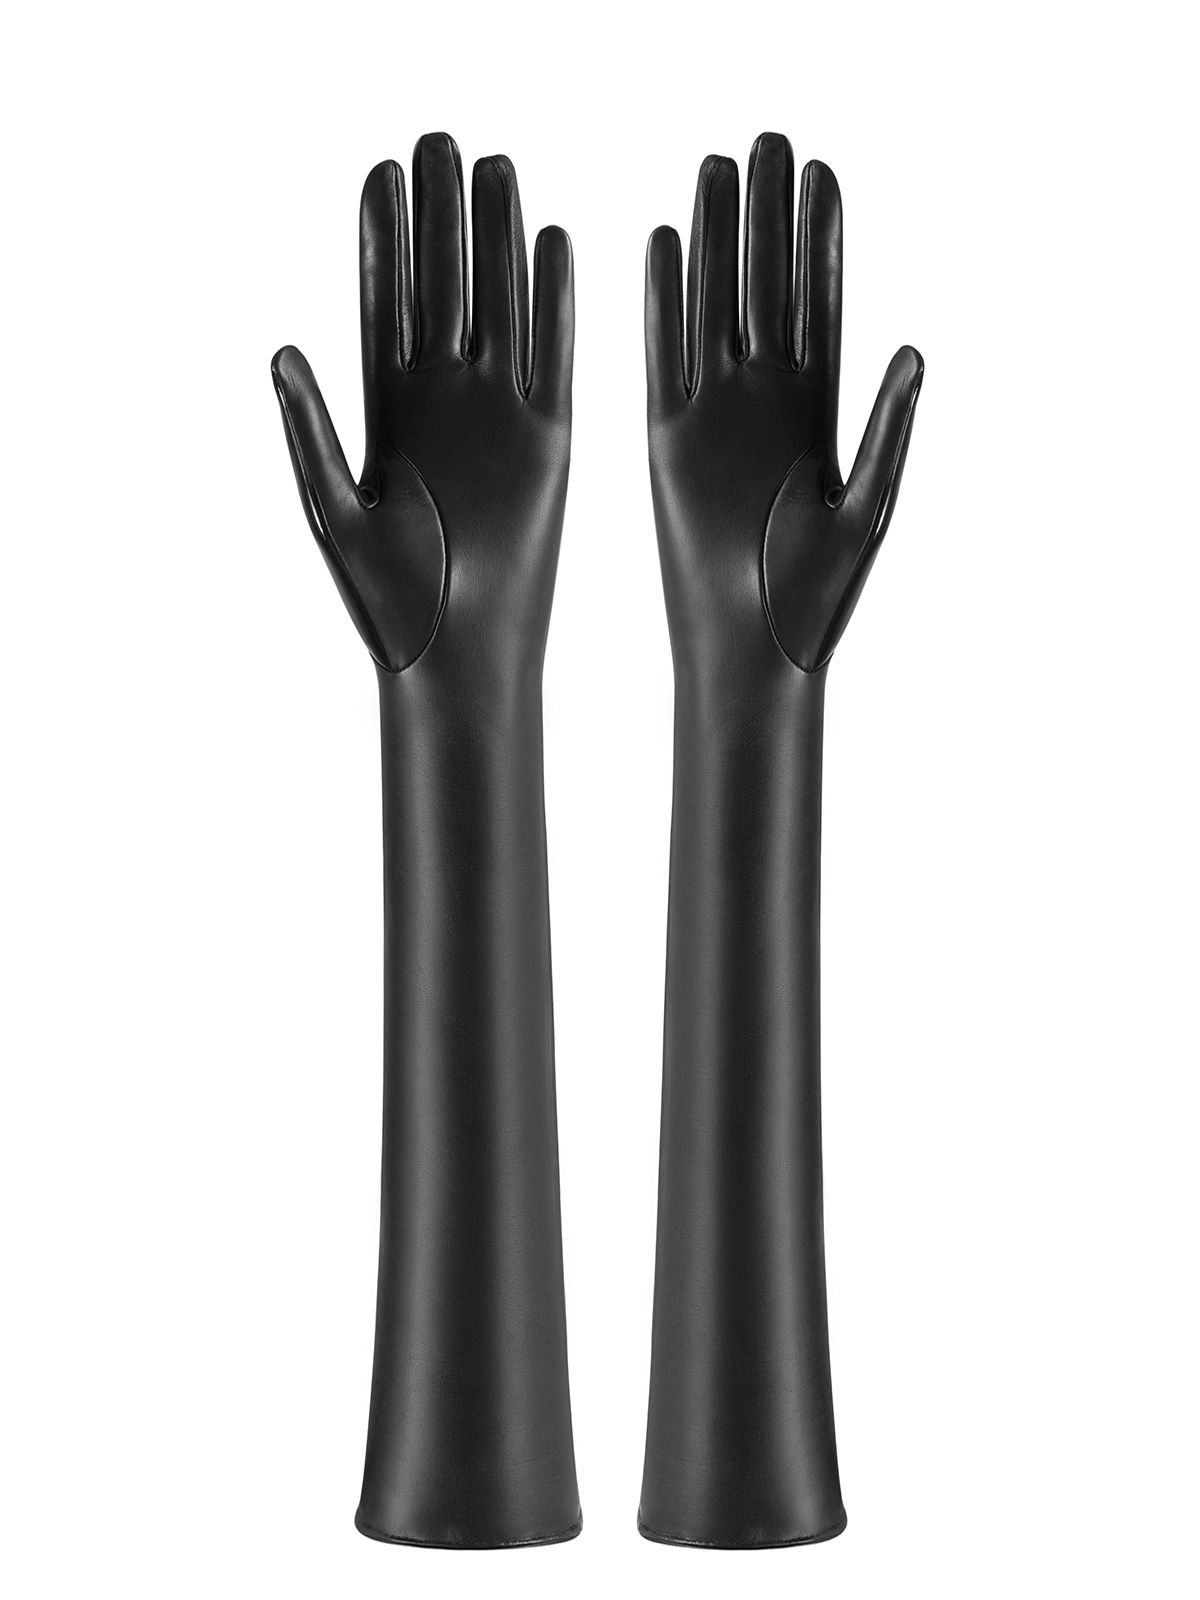 Patent leather driving gloves - Long Black Patent Leather Gloves Long Black Patent Leather Gloves